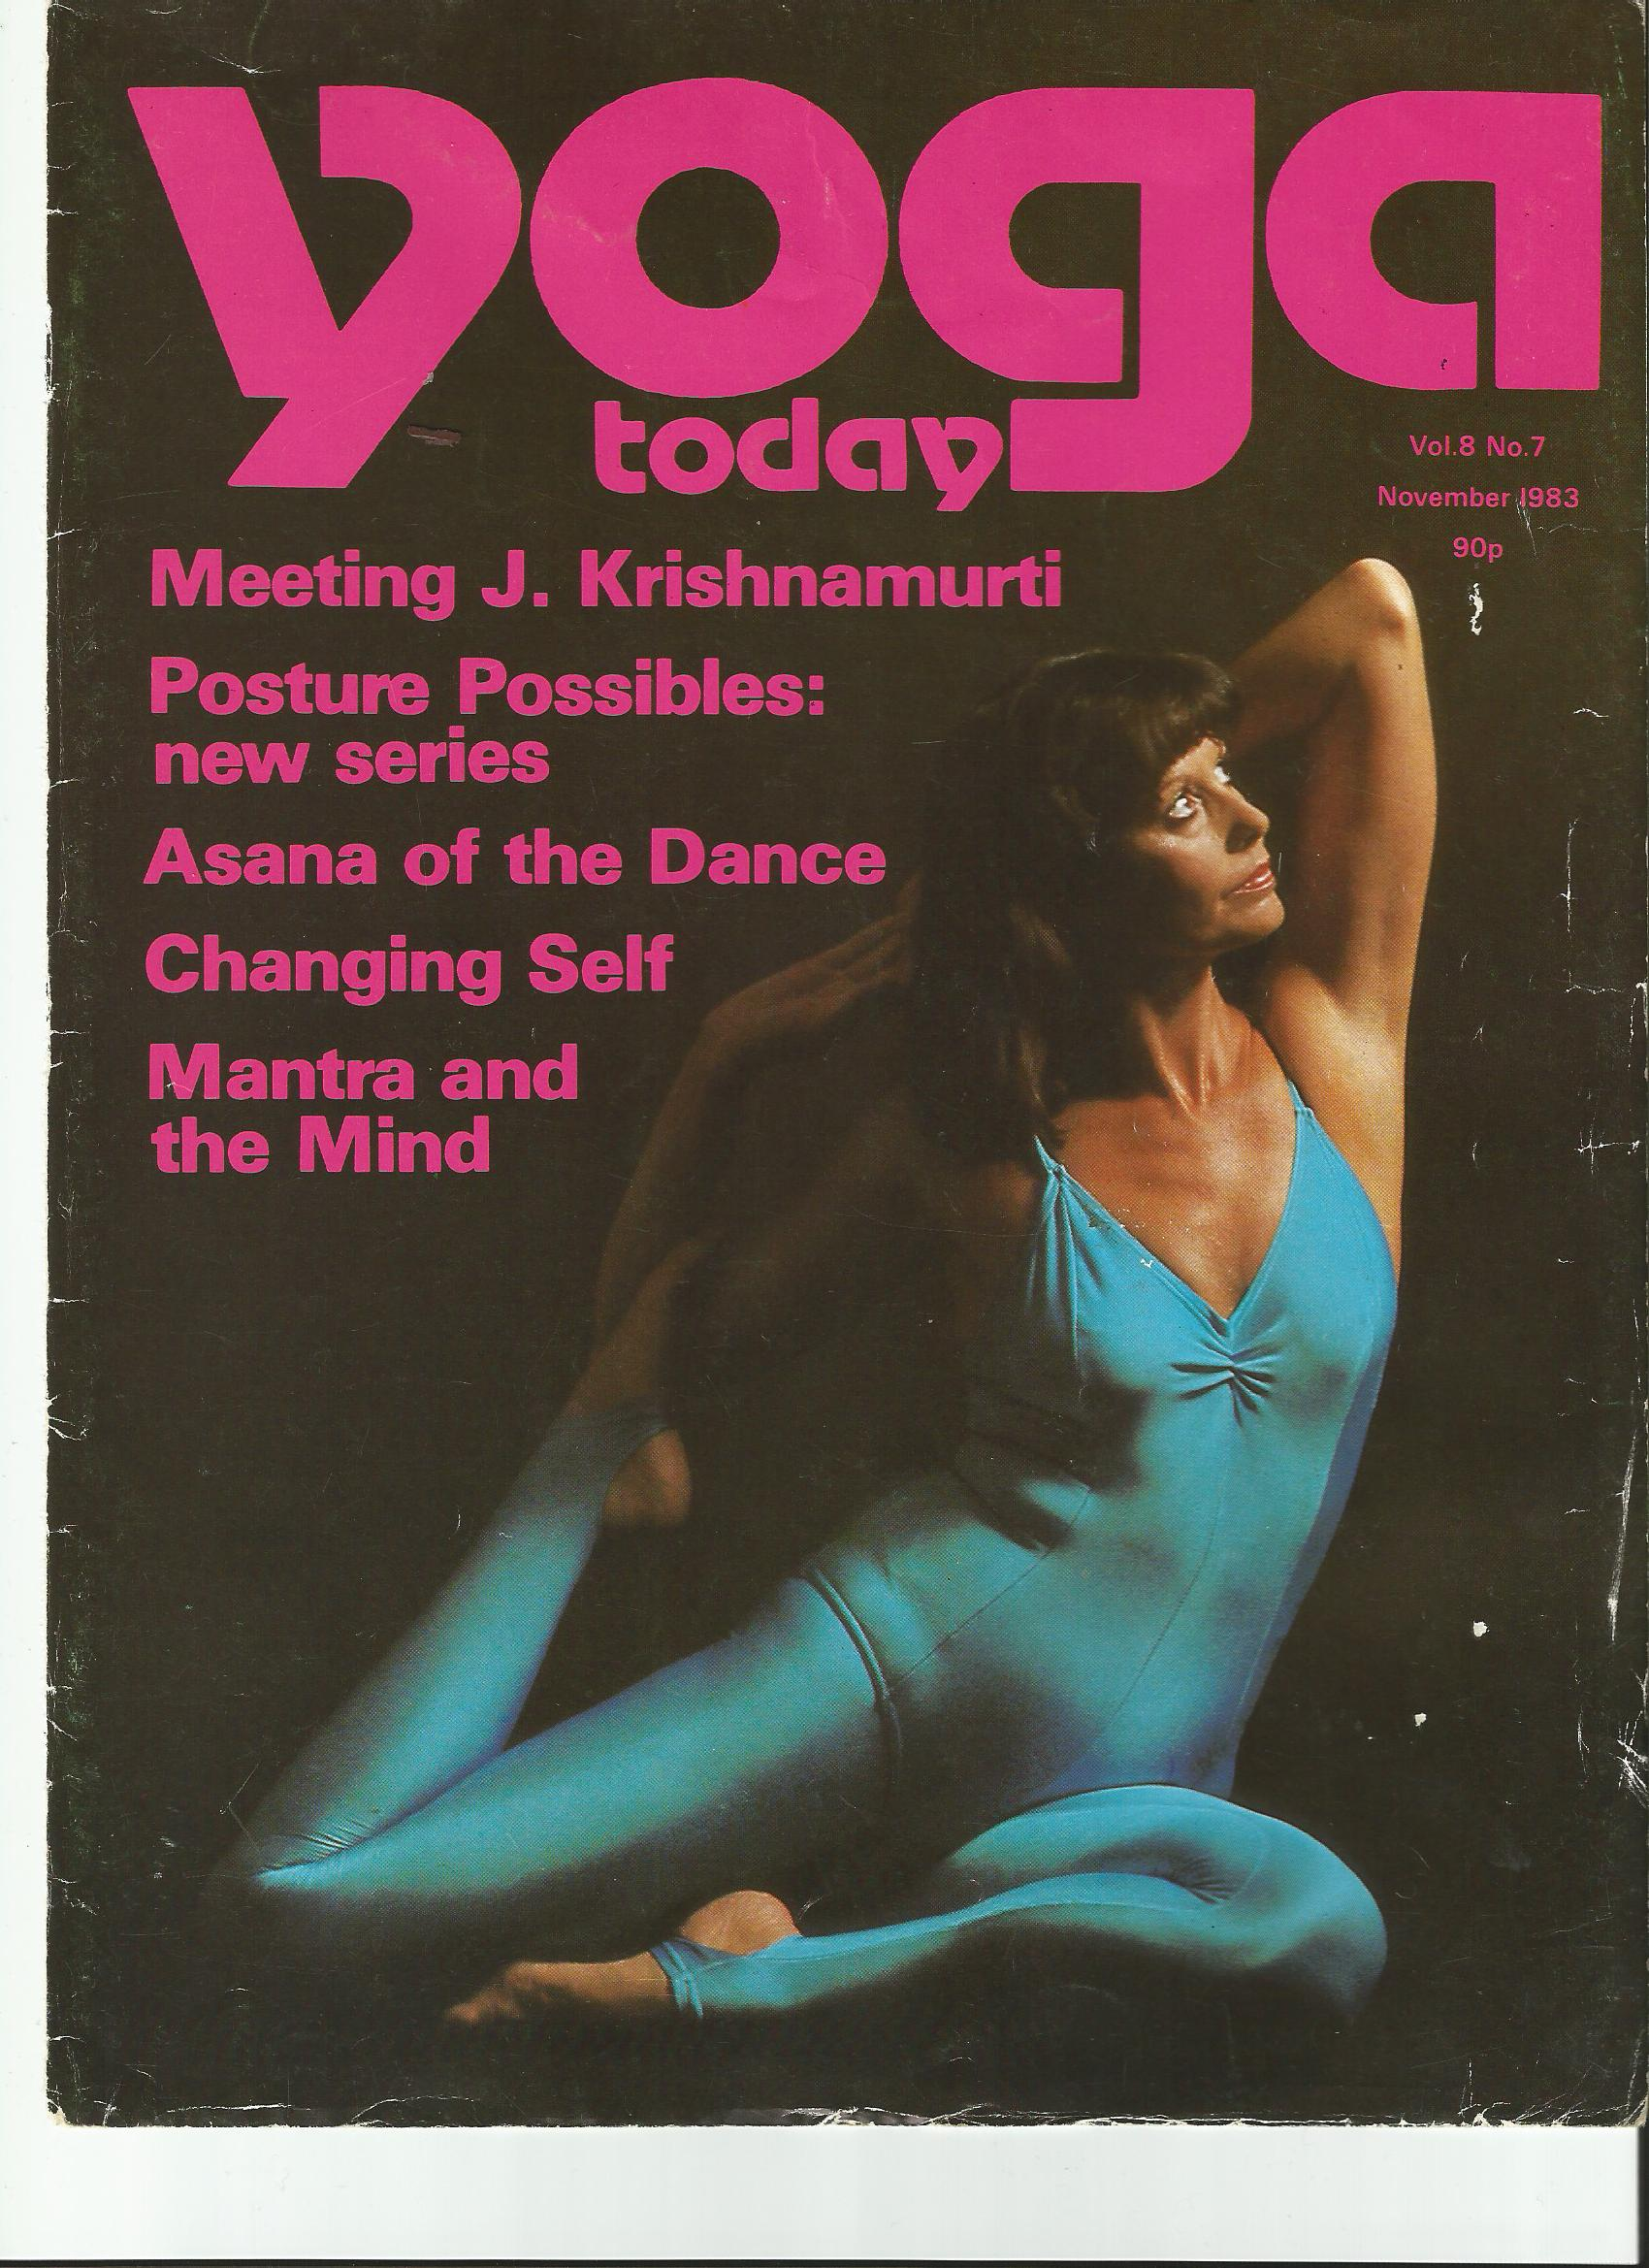 Yoga today 1983